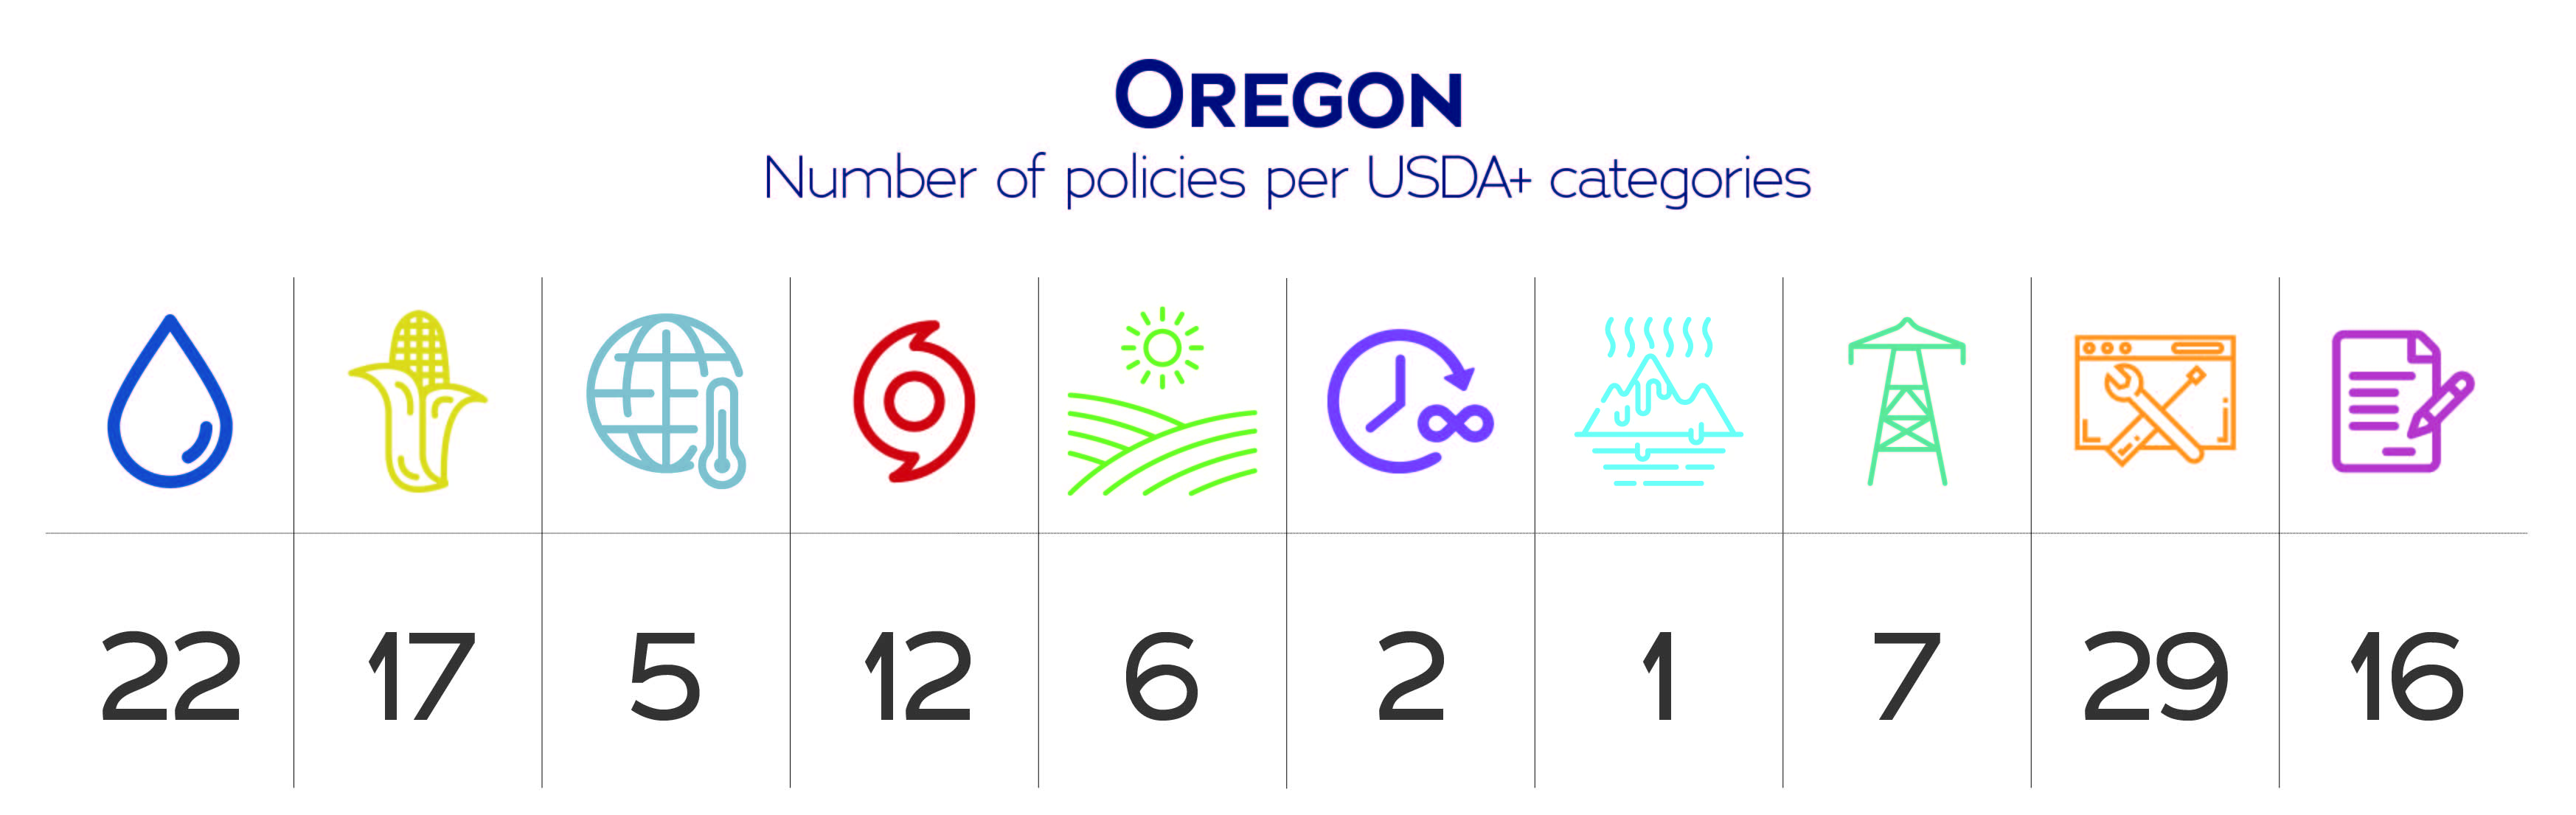 Oregon USDA+ category data